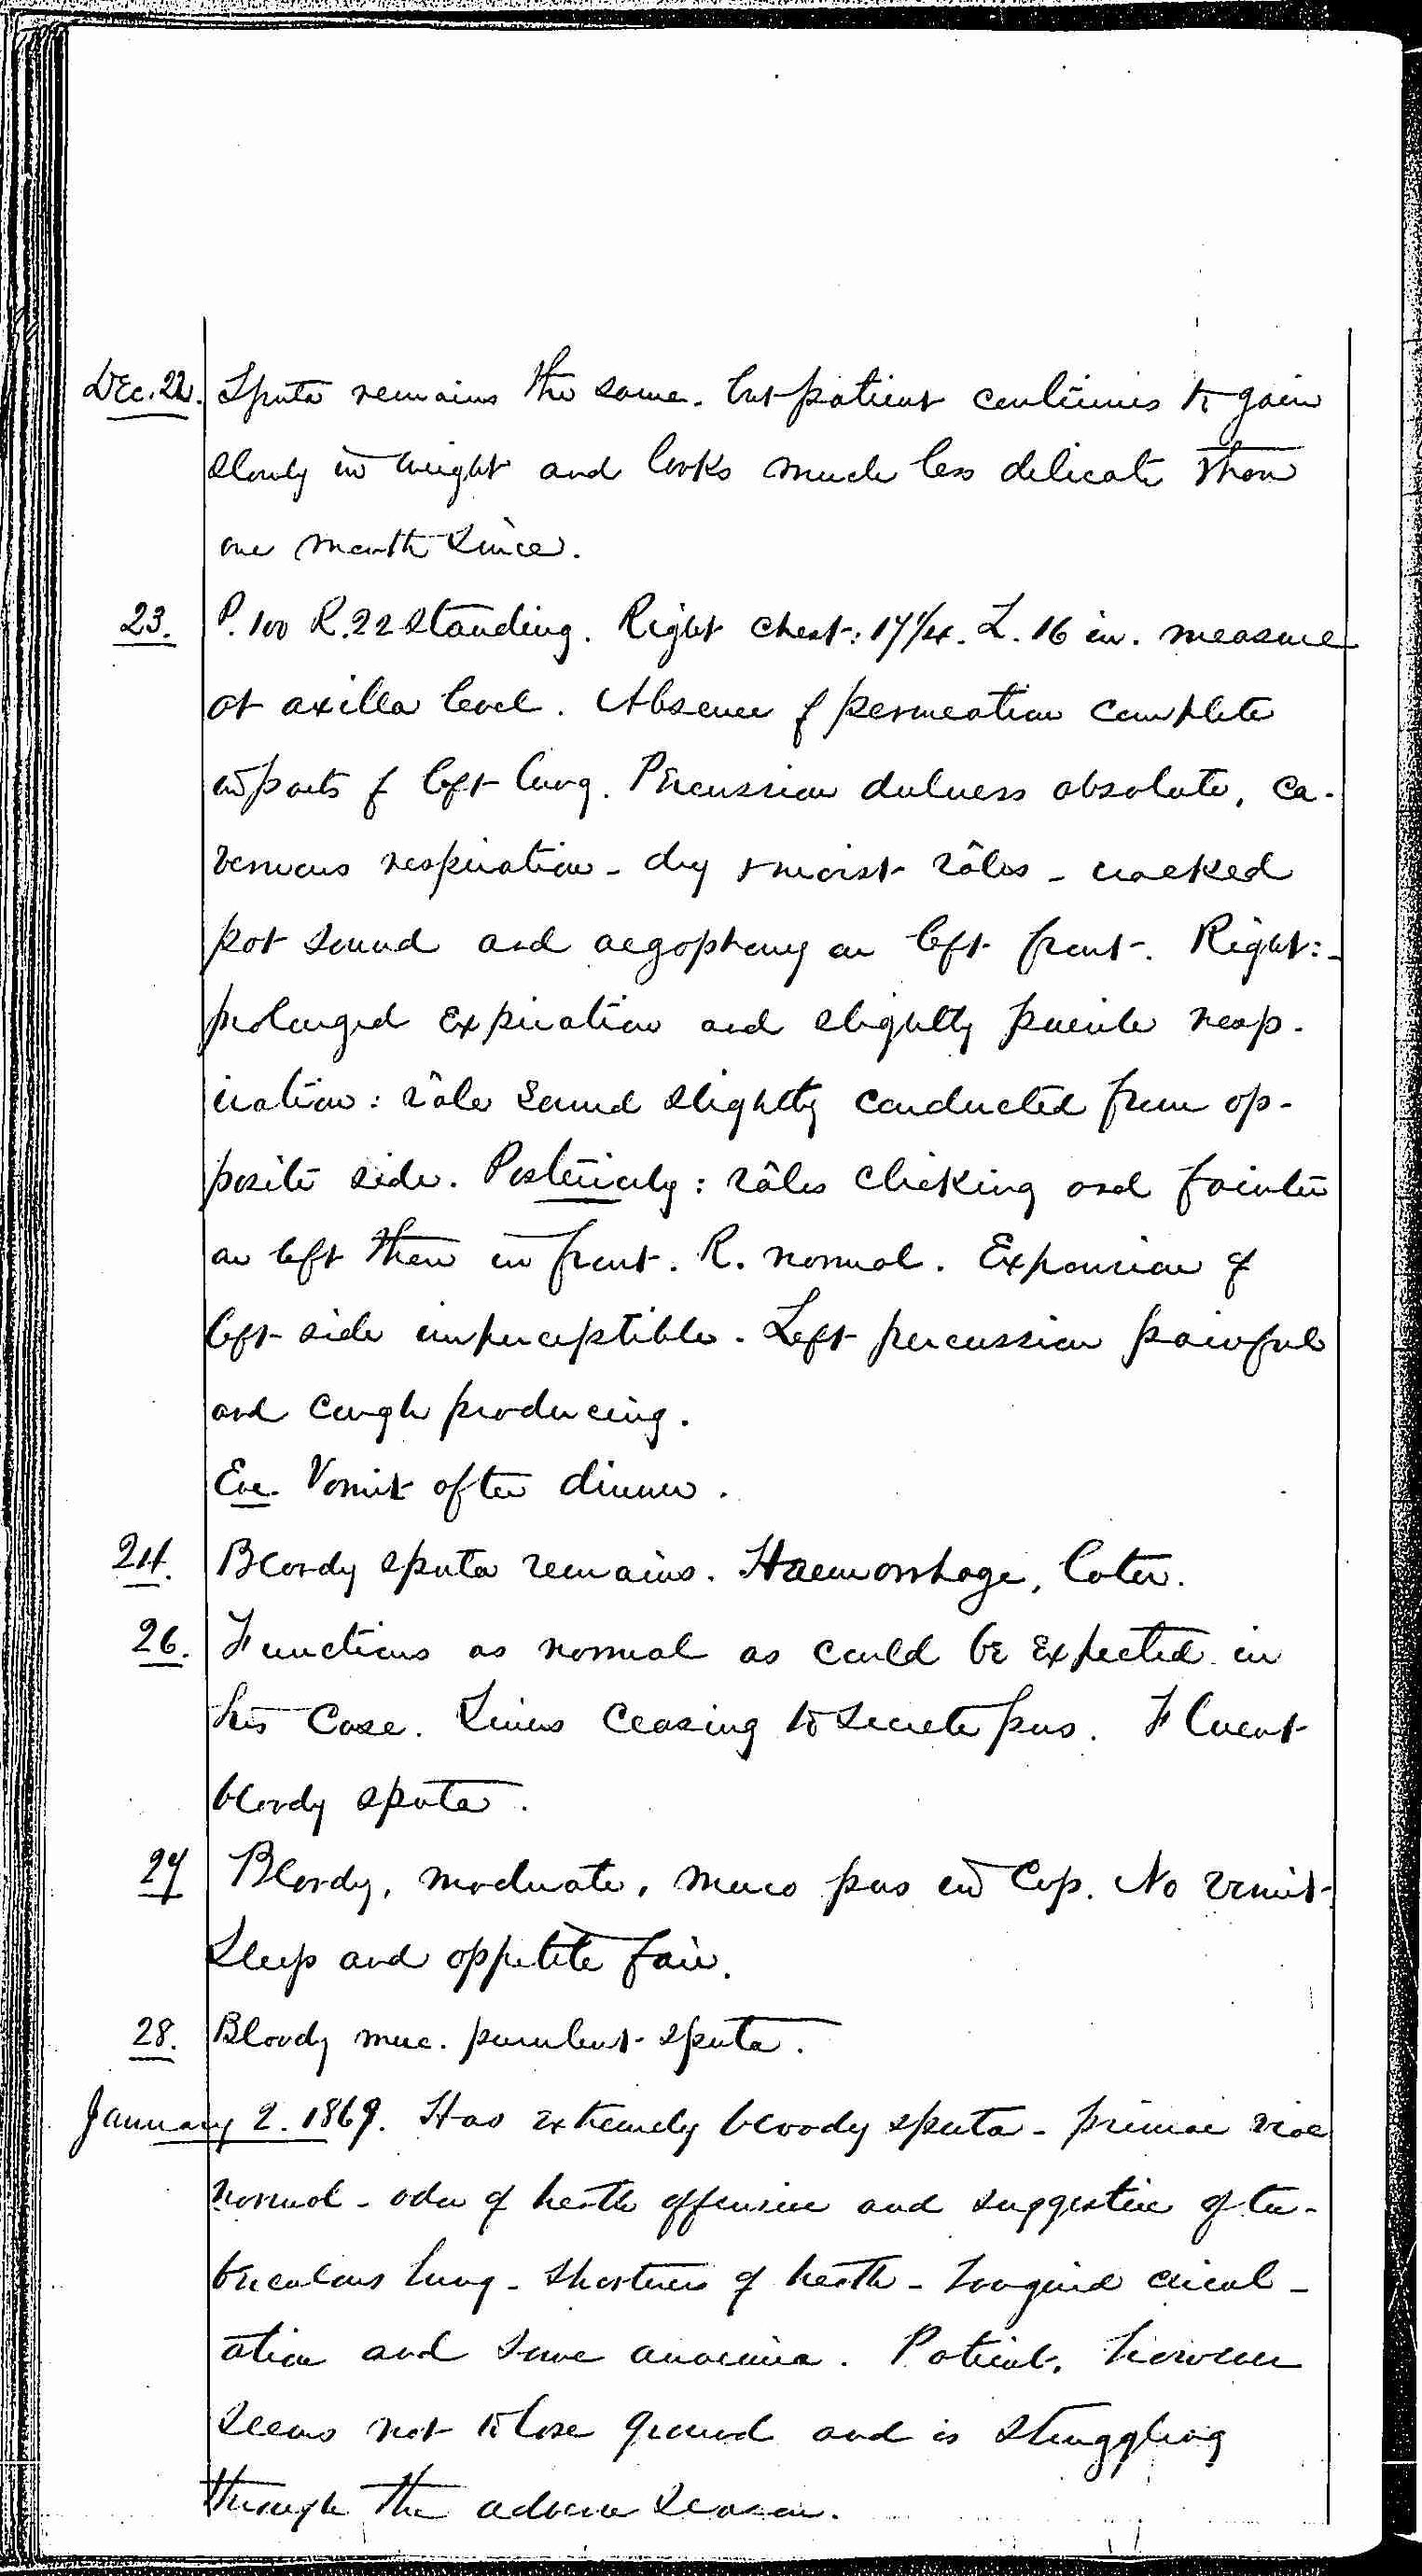 Entry for Bernard Drury (page 22 of 31) in the log Hospital Tickets and Case Papers - Naval Hospital - Washington, D.C. - 1868-69